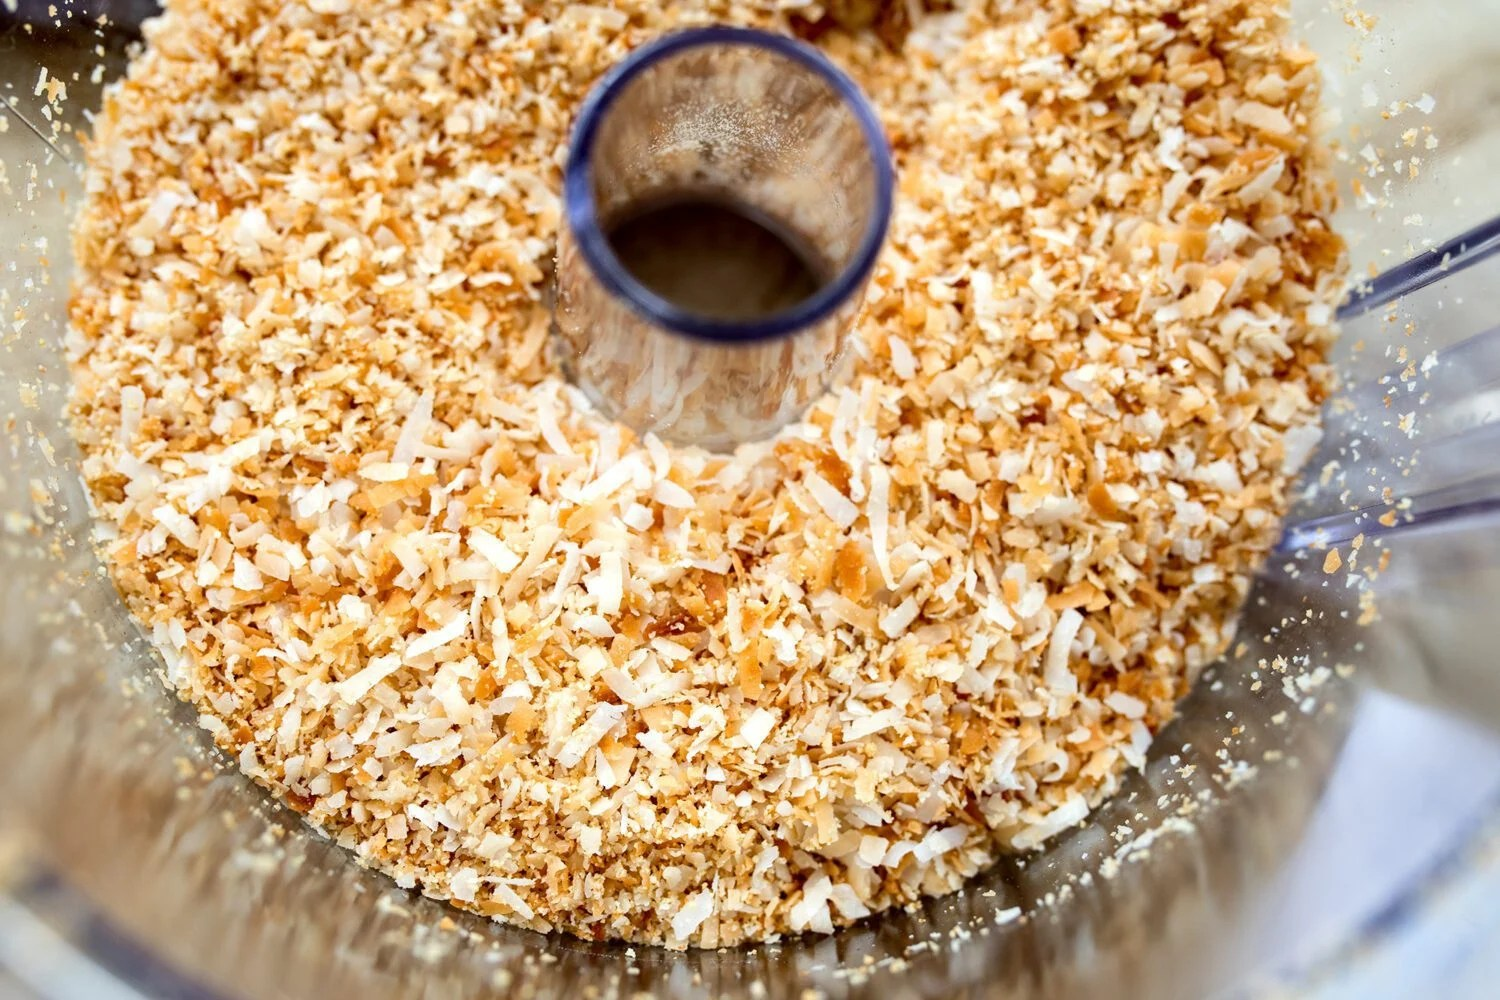 toasted coconut in a food processor